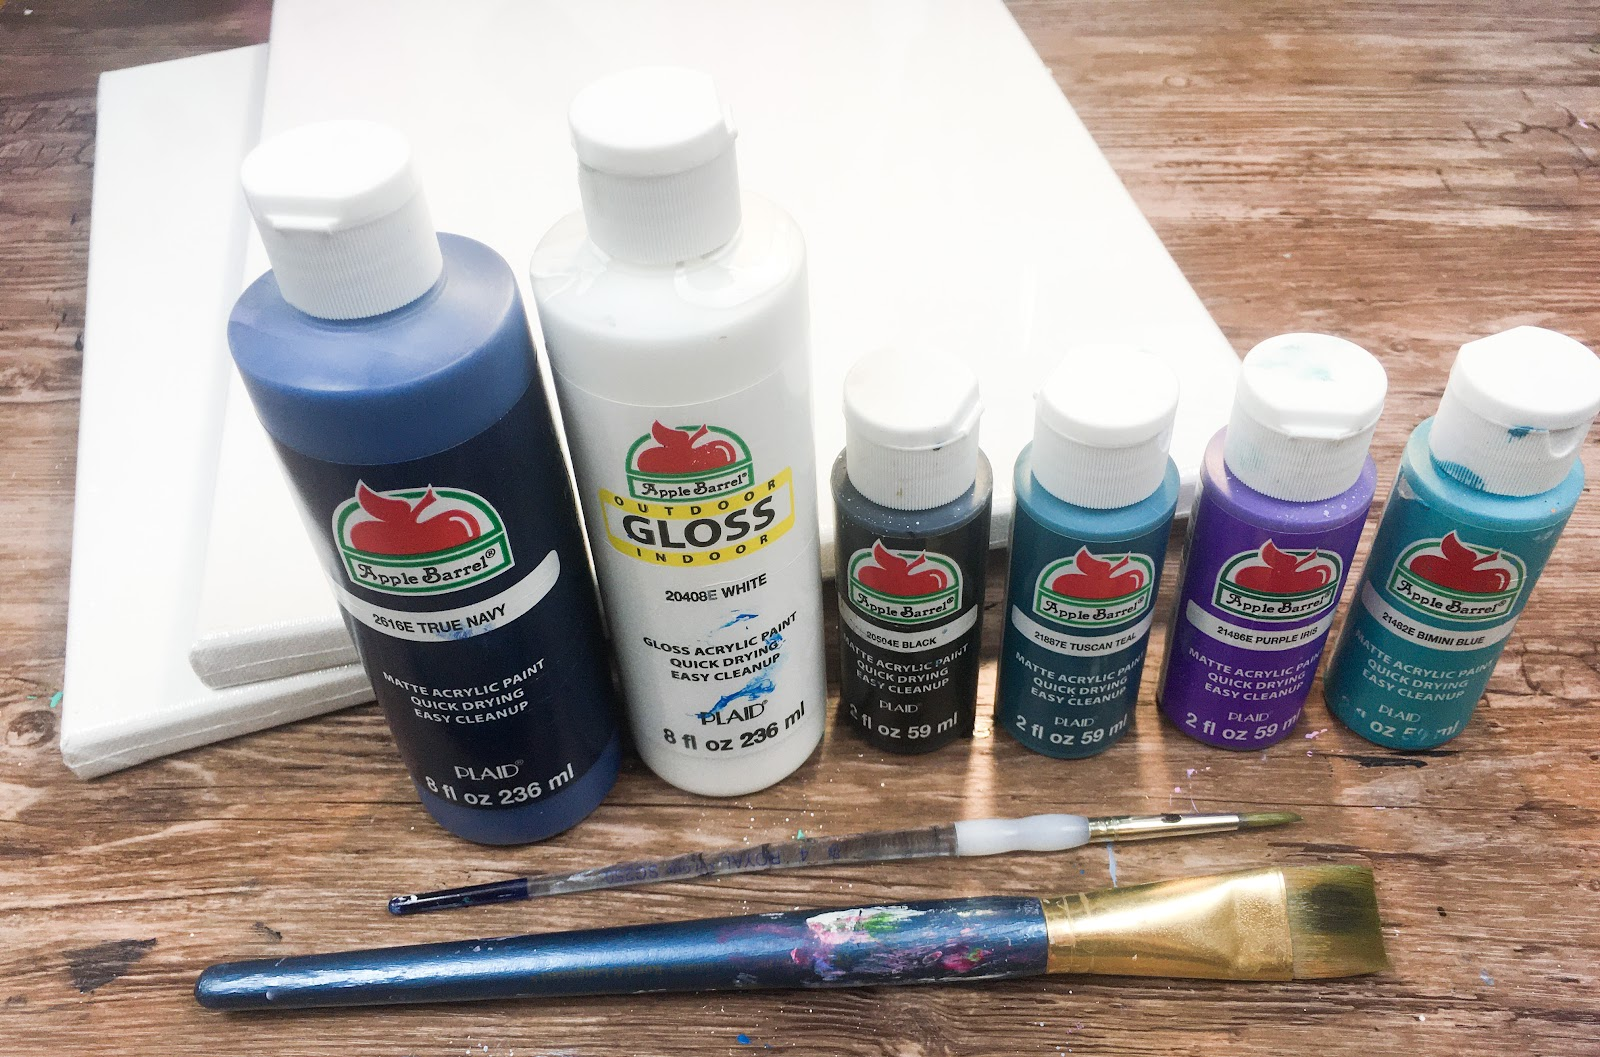 paint supplies for couples paint night at home date